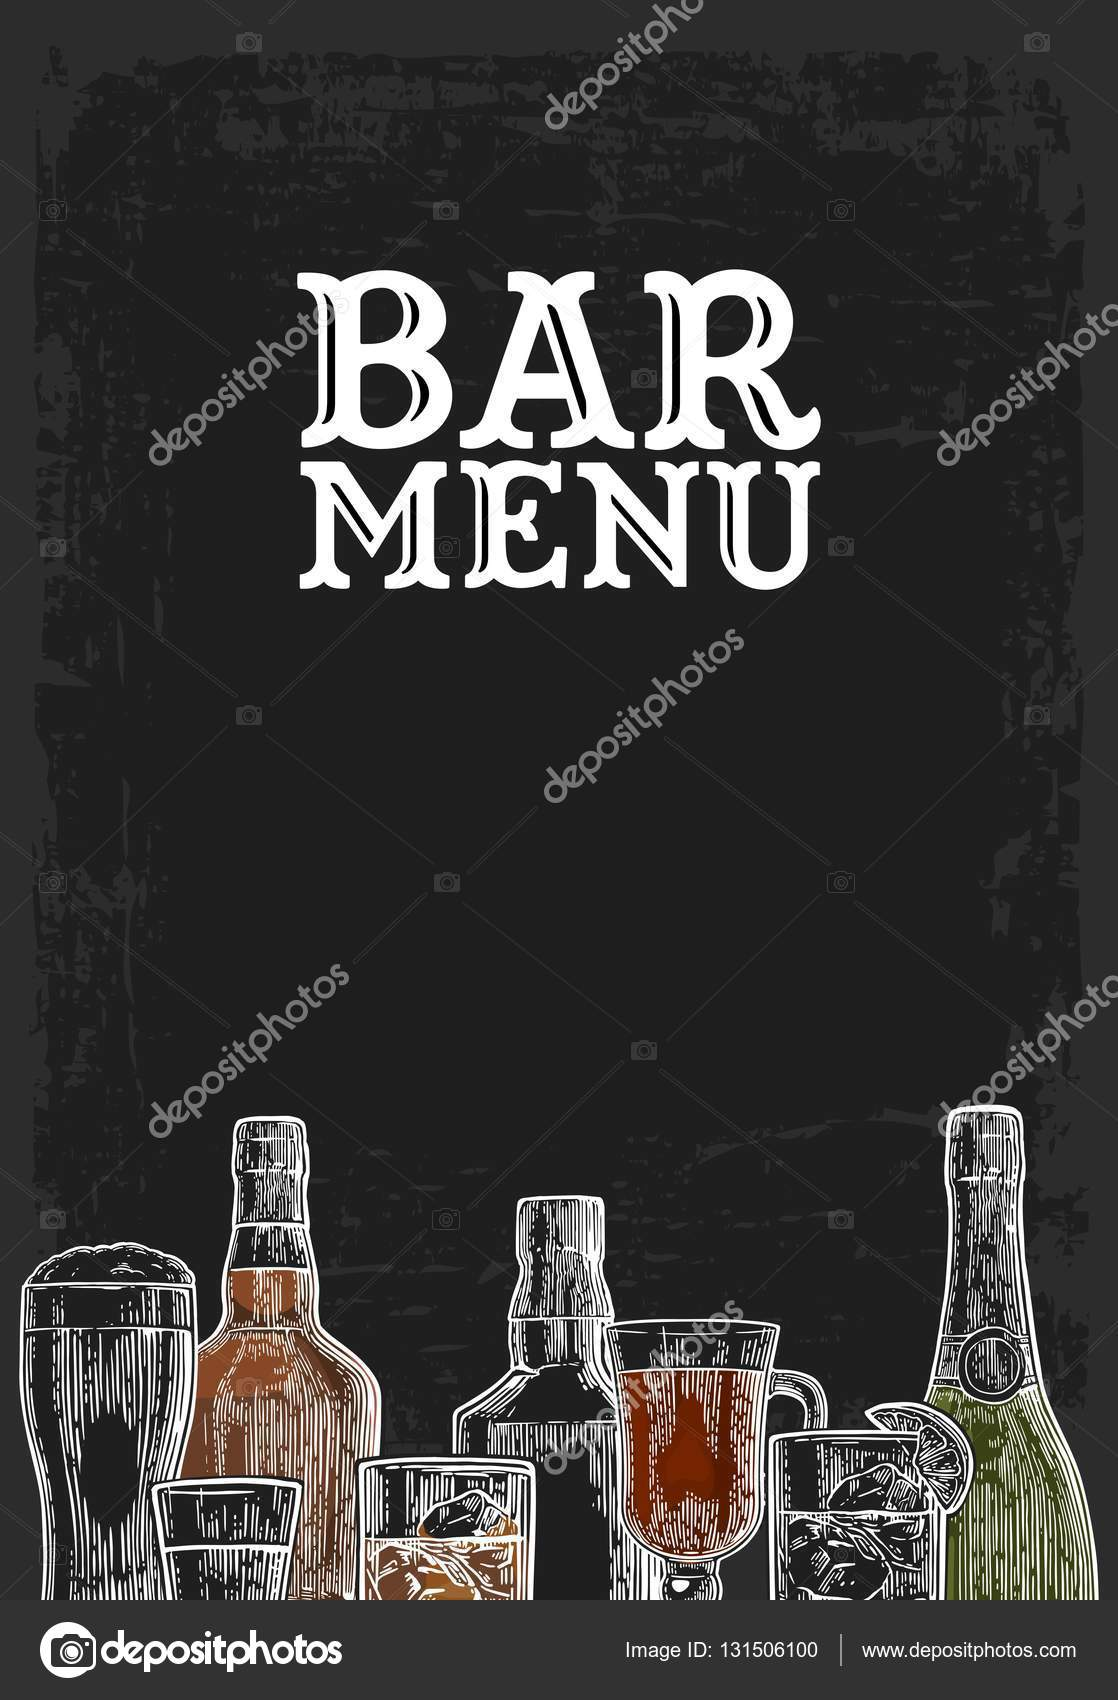 mod le pour bar boisson alcool menu image vectorielle denispotysiev 131506100. Black Bedroom Furniture Sets. Home Design Ideas